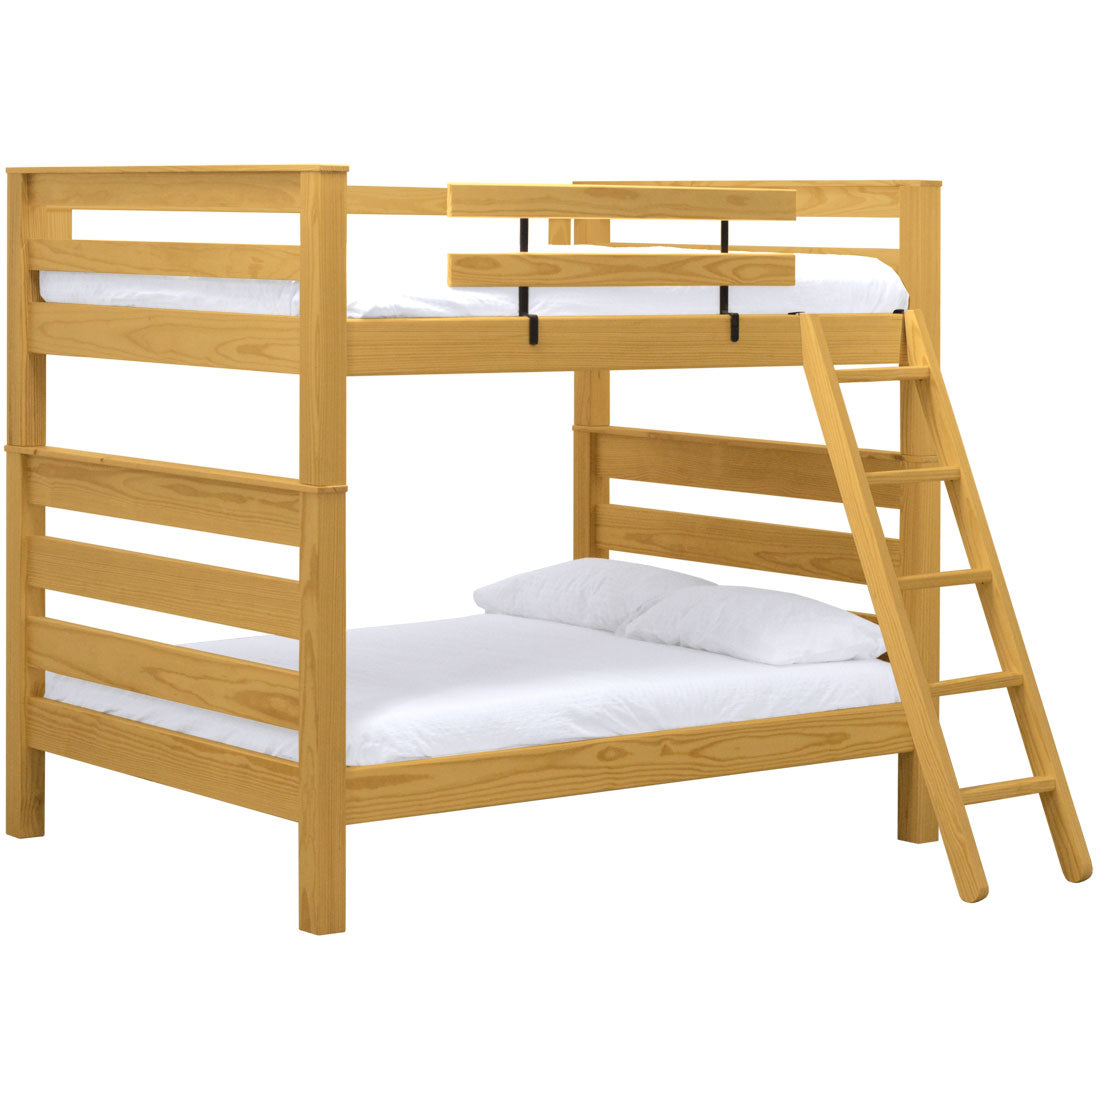 Picture of: Timberframe Bunk Bed Queen Over Queen With Ladder Crate Designs Furniture